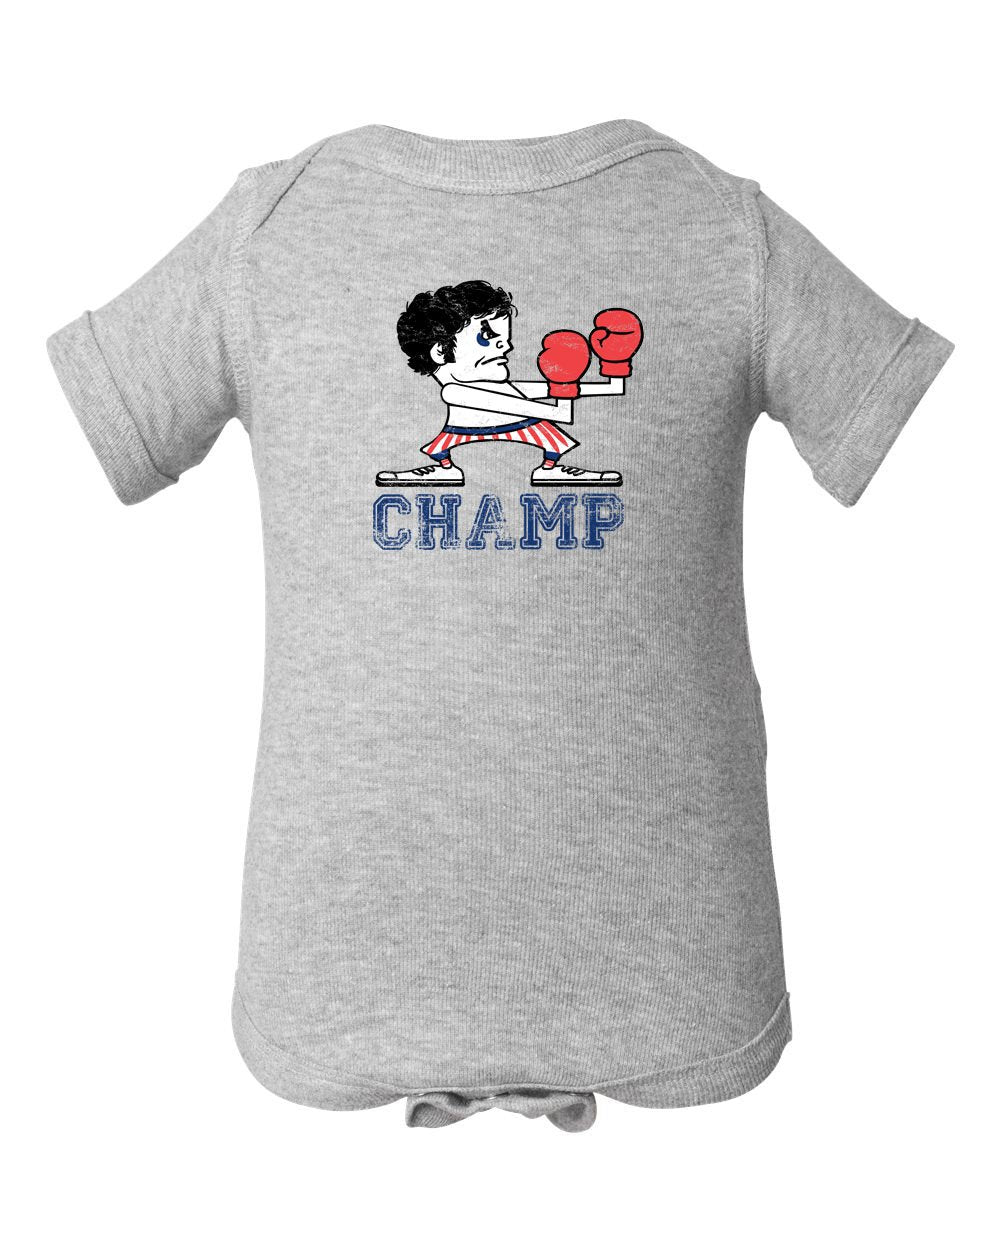 Champ INFANT Onesie